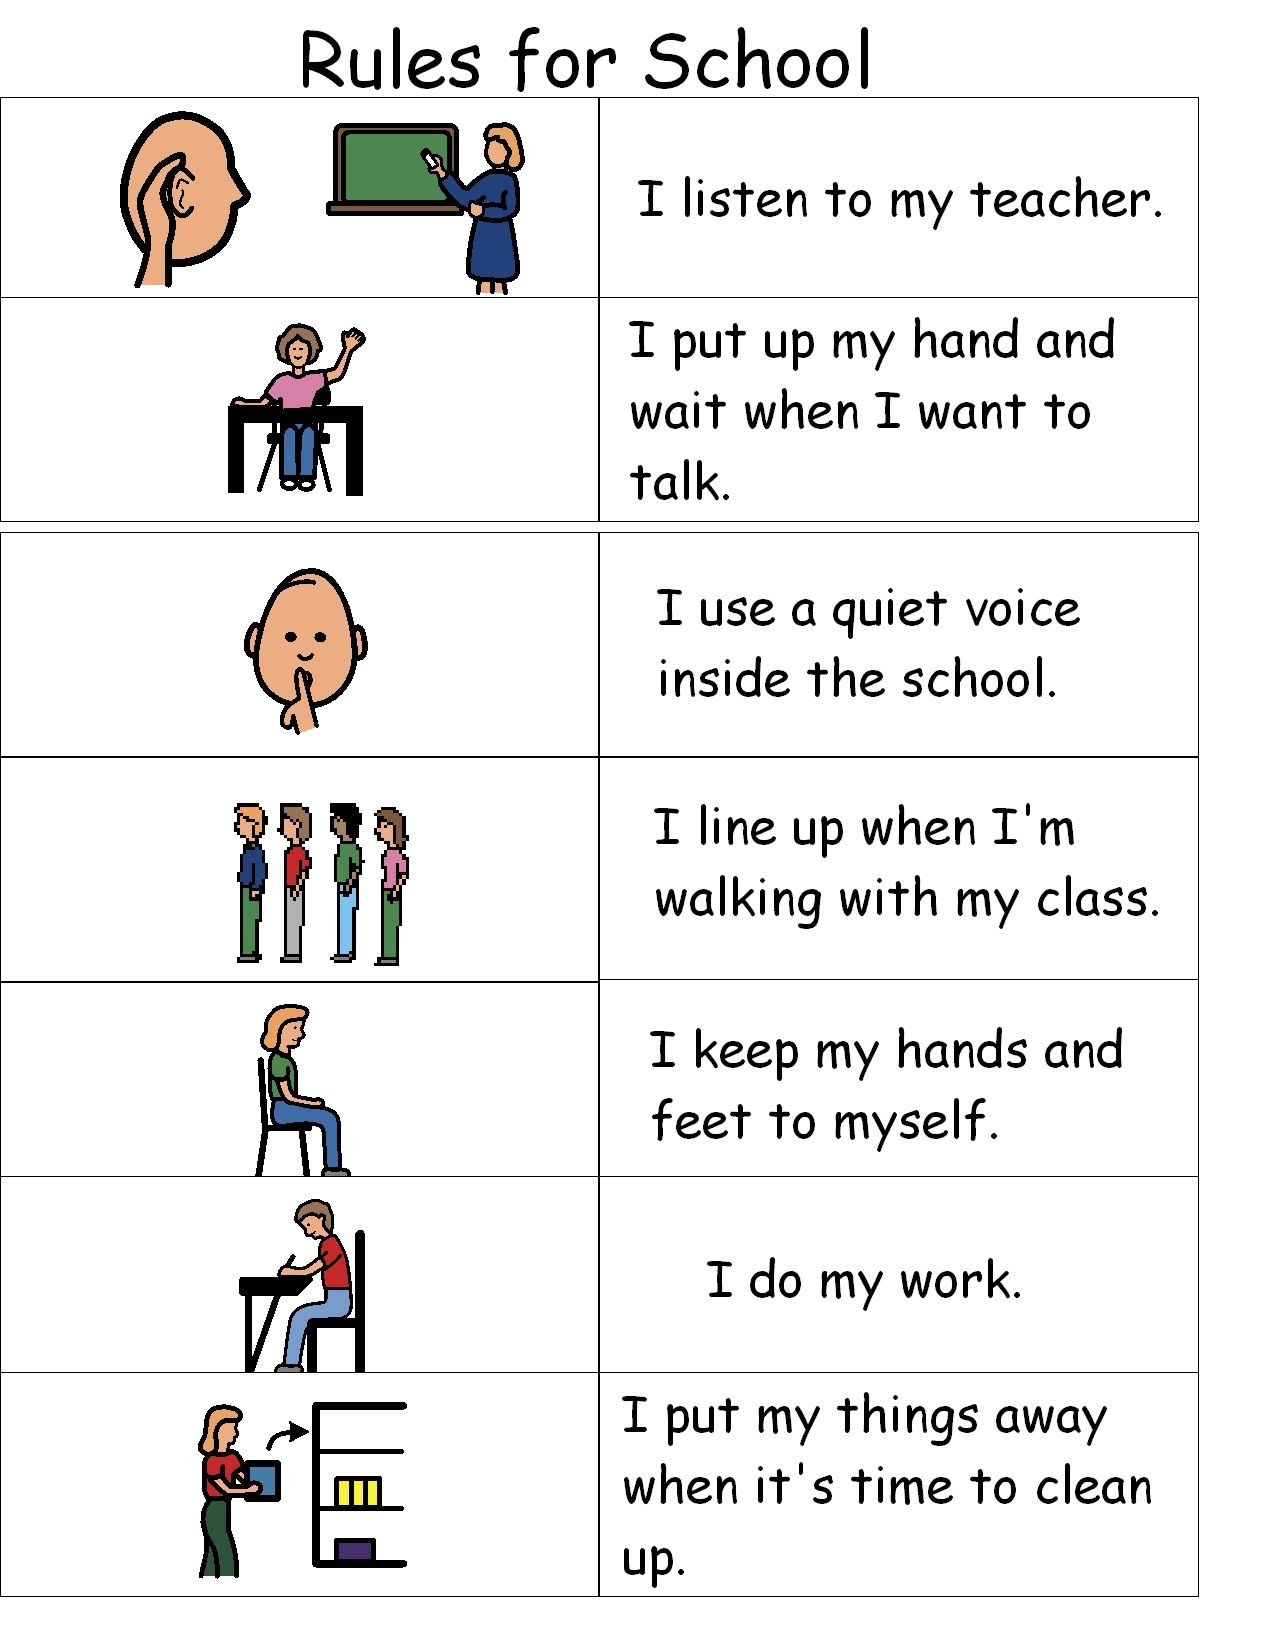 how i should conduct myself in school Ethical leadership encompasses the rules of conduct surrounding school leaders i can see myself as a school leader through my roles as a classroom teacher.